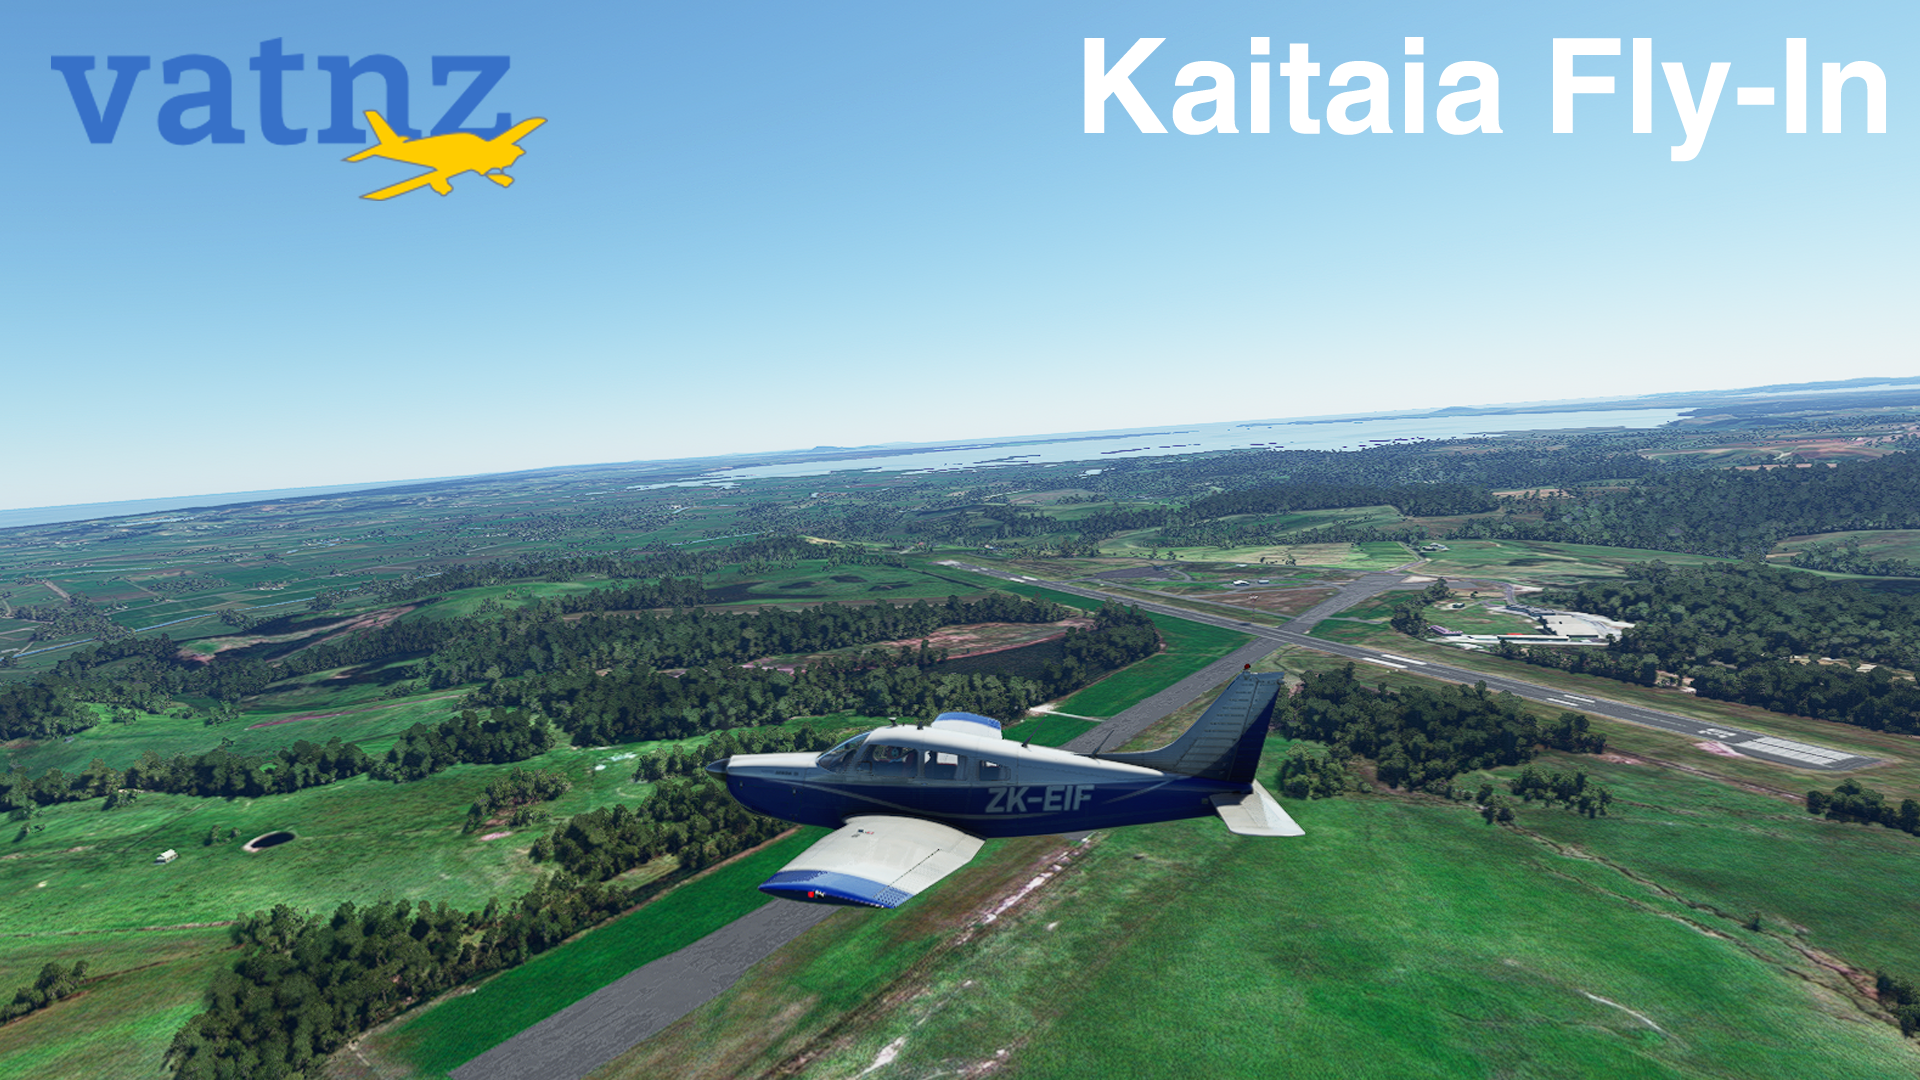 Kaitaia Fly-in